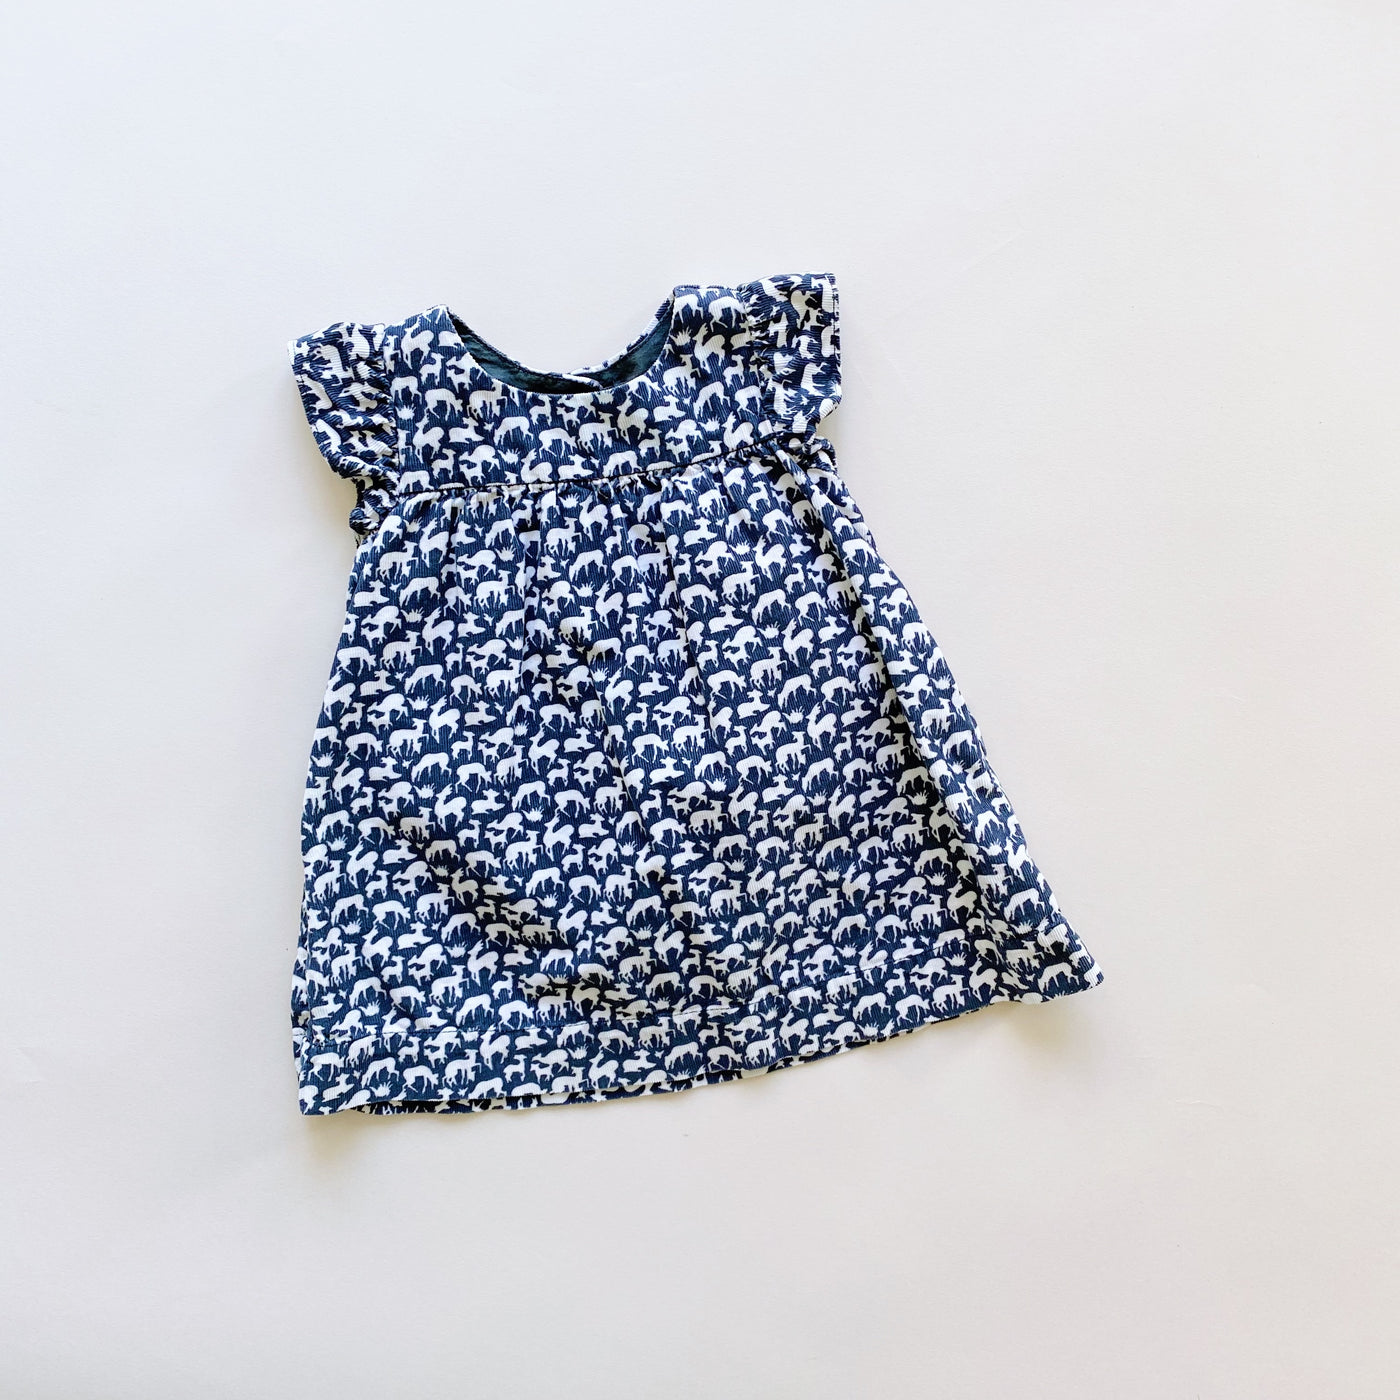 Baby Gap Lightweight Corduroy Deer Dress / Size 3-6M